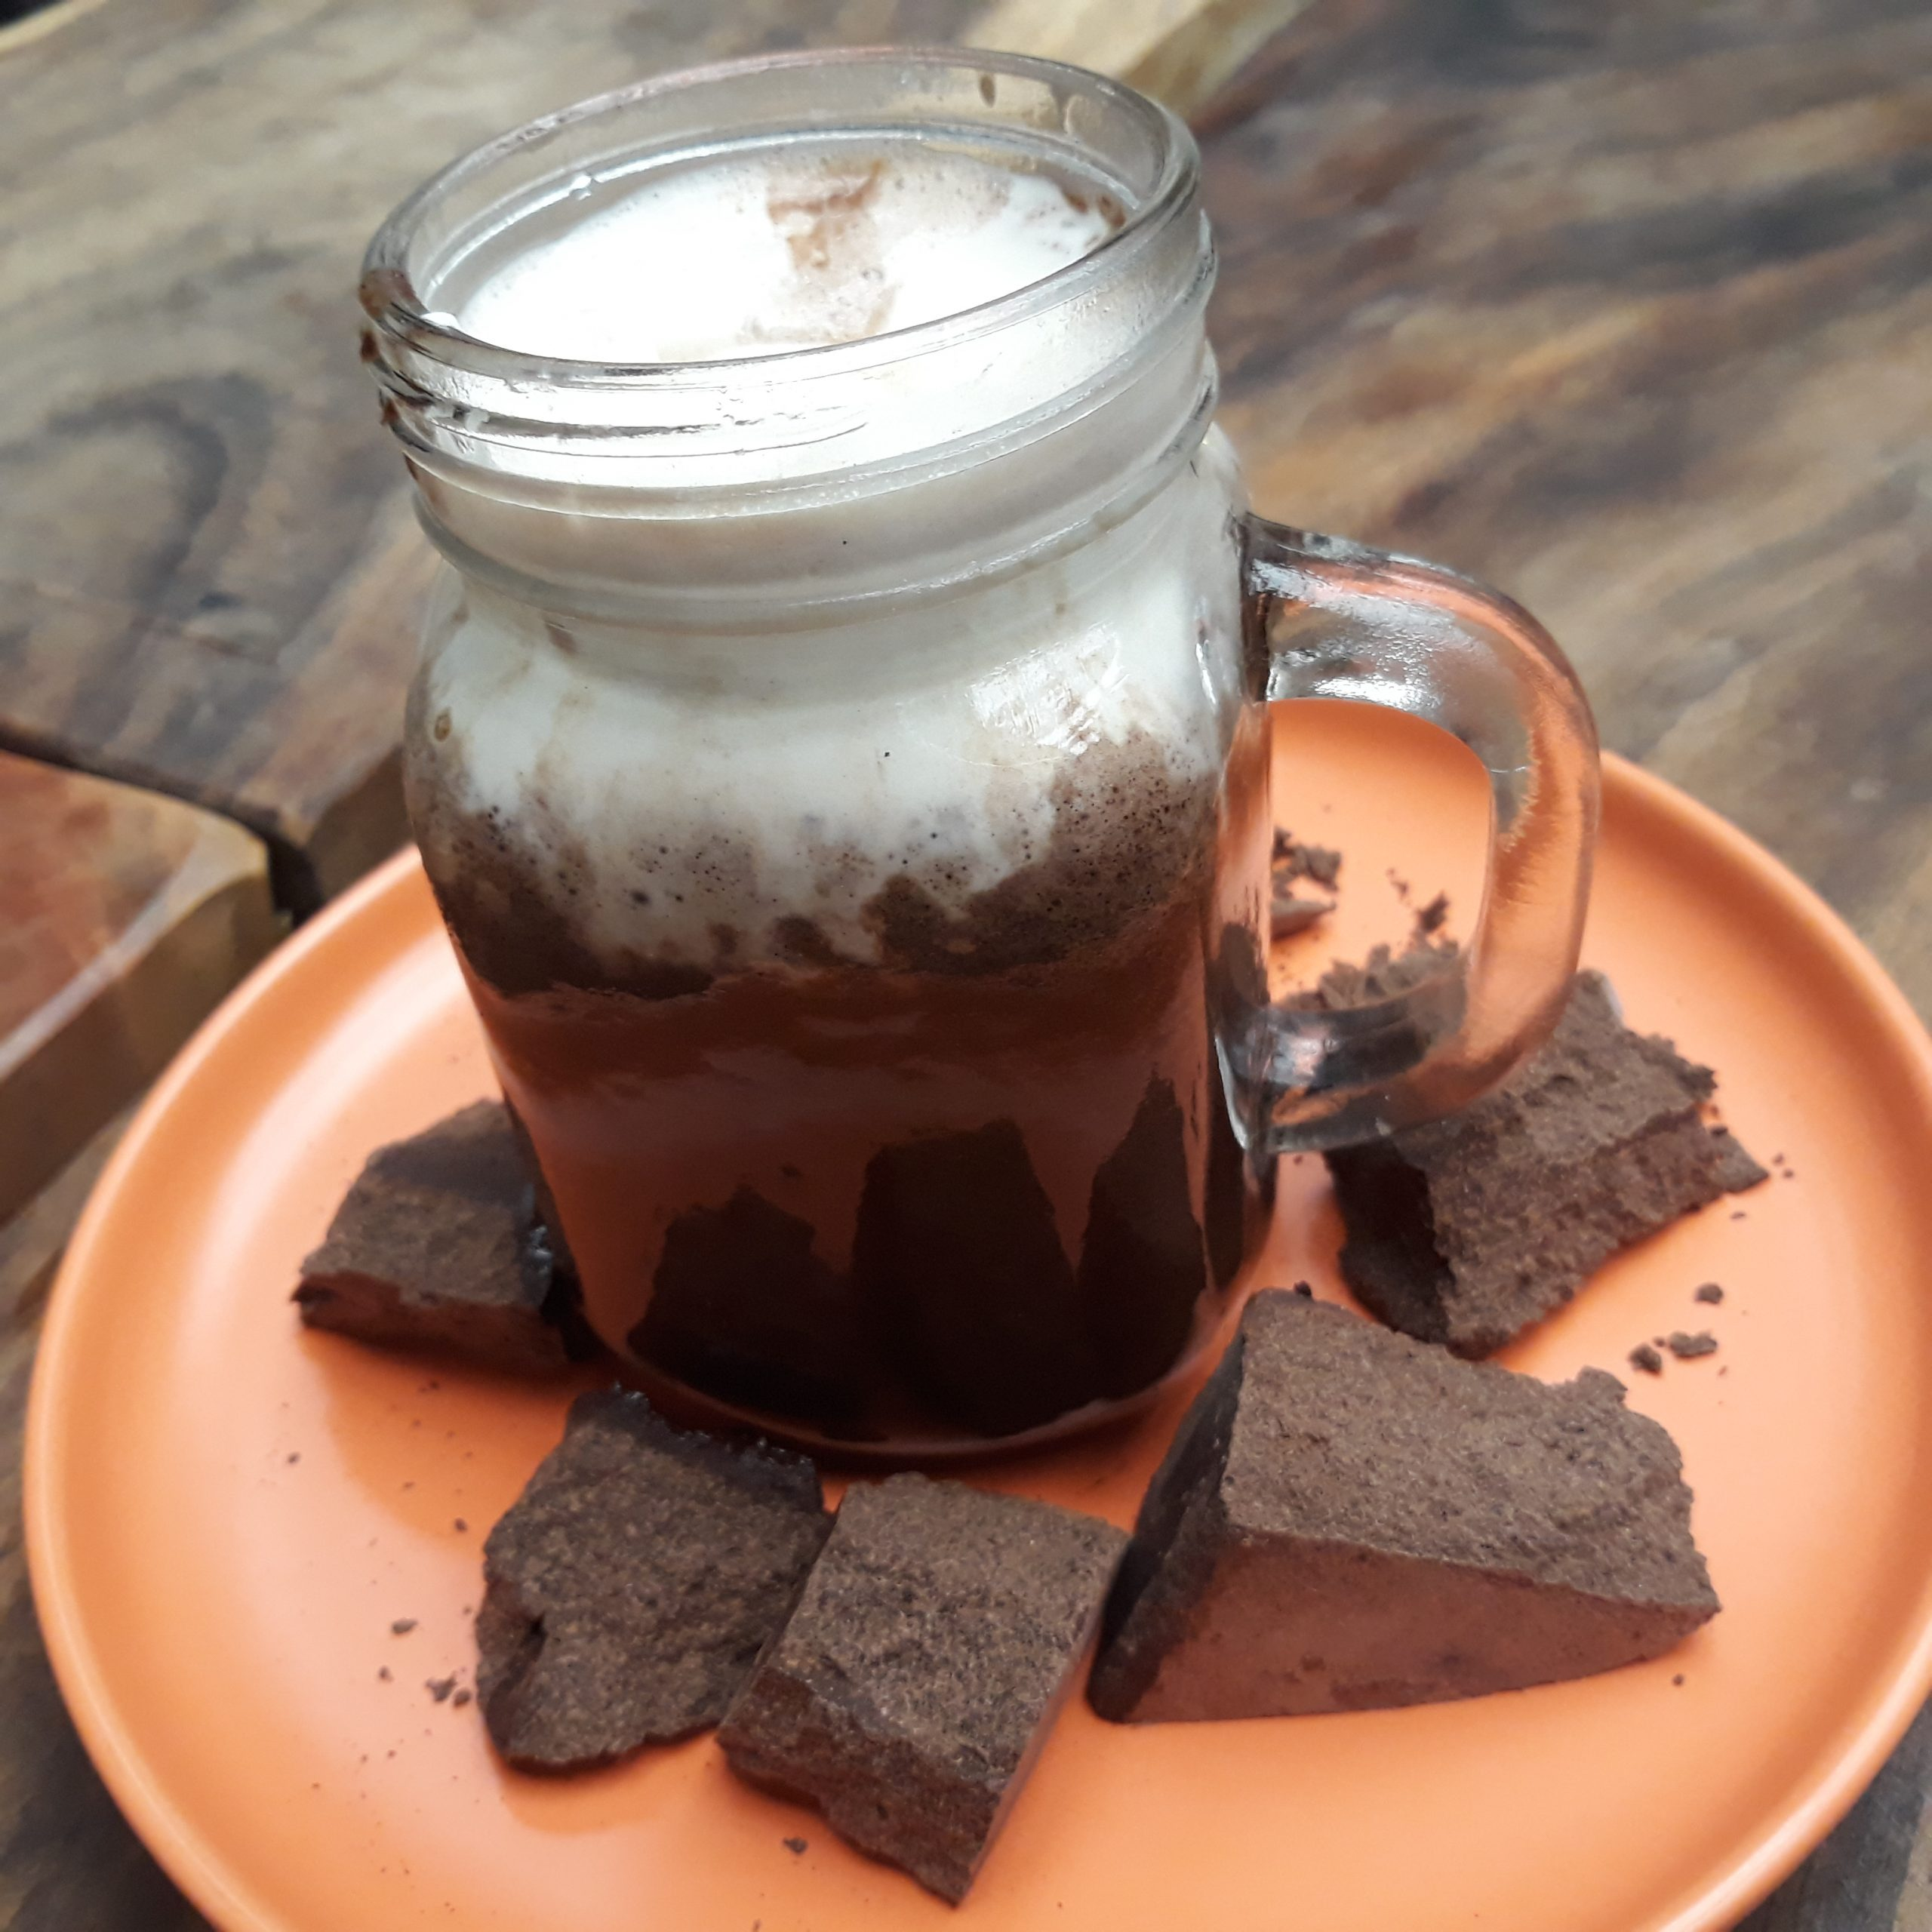 Hot chocoloate from tablea on an orange plate